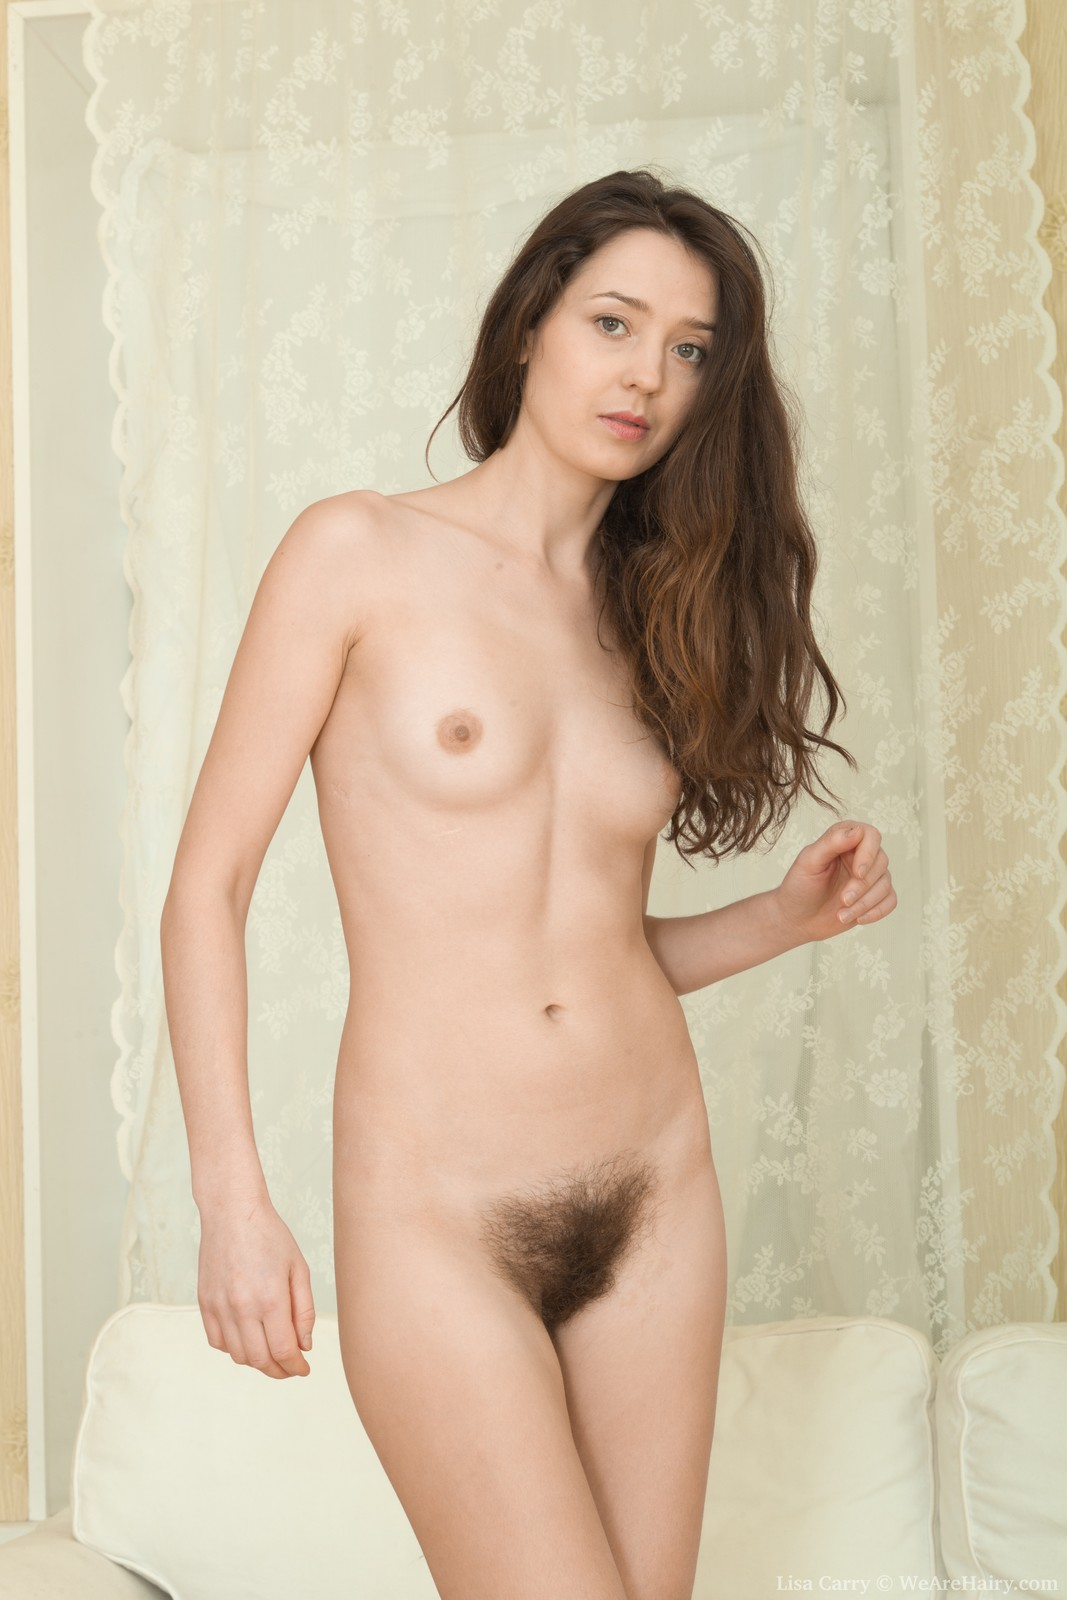 hairy pussy ru Lisa Carry from WeAreHairy.com